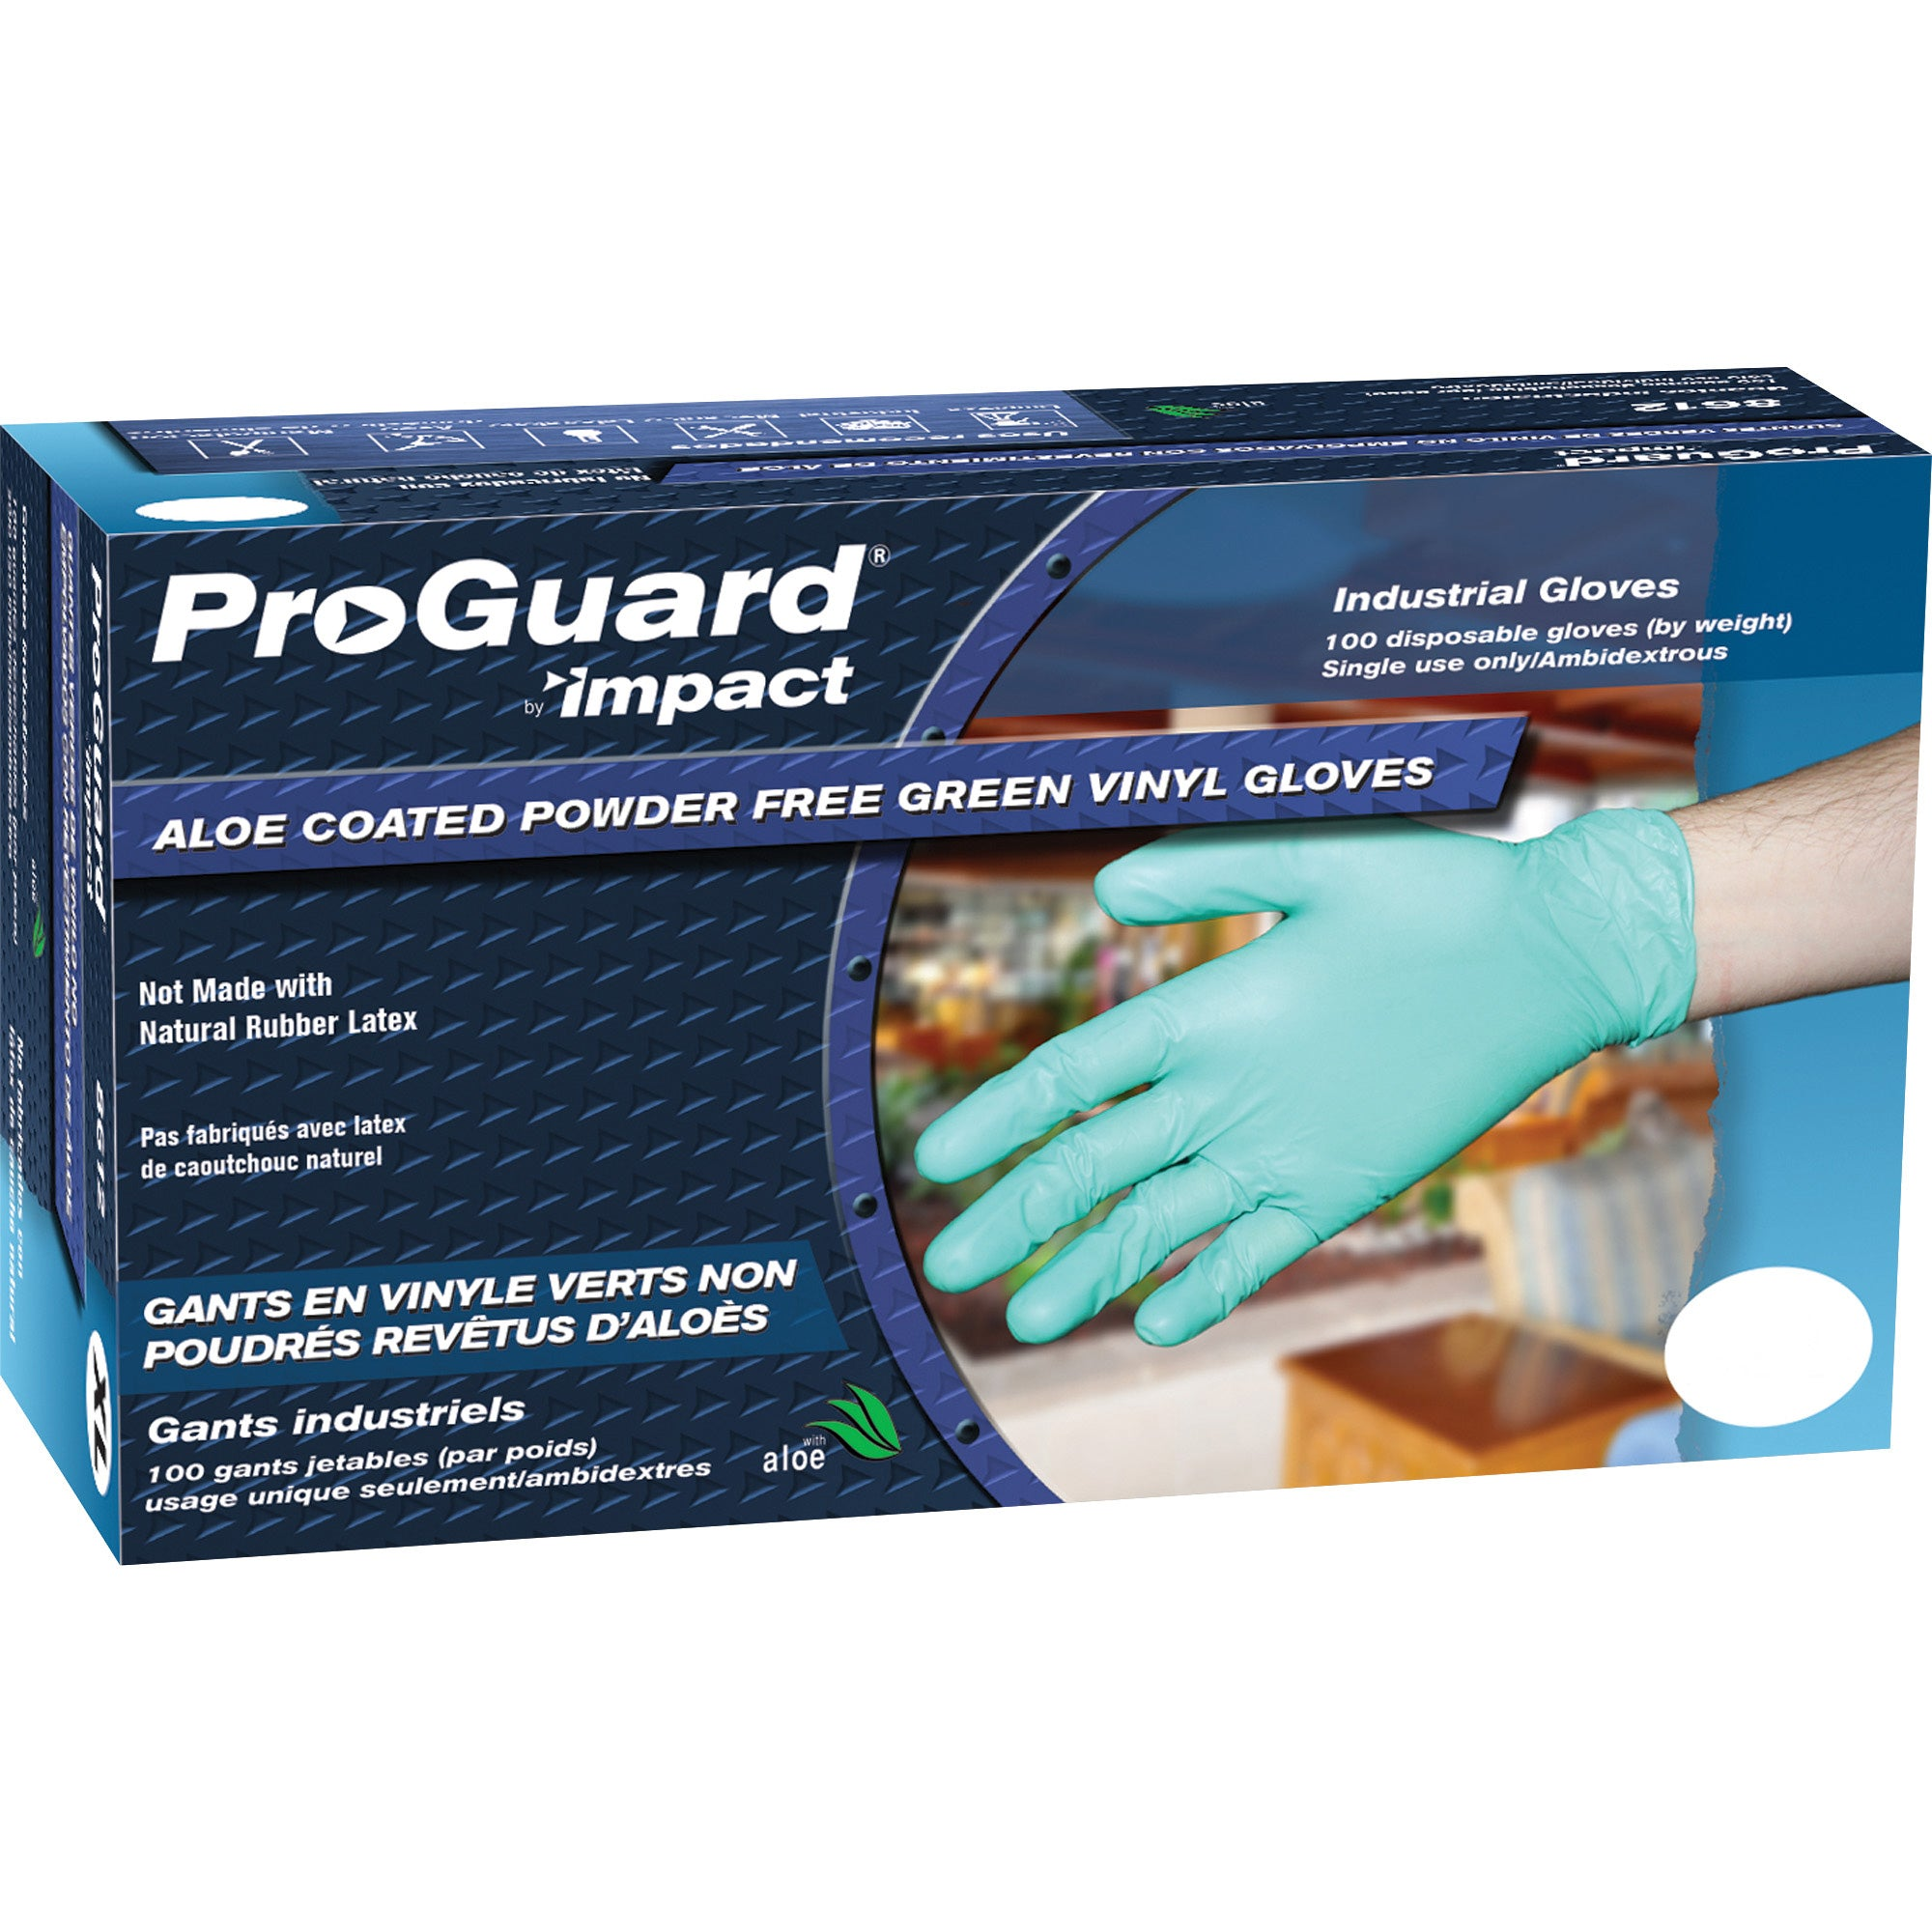 ProGuard Aloe Coated Medium Vinyl Gloves 100/Box 8612